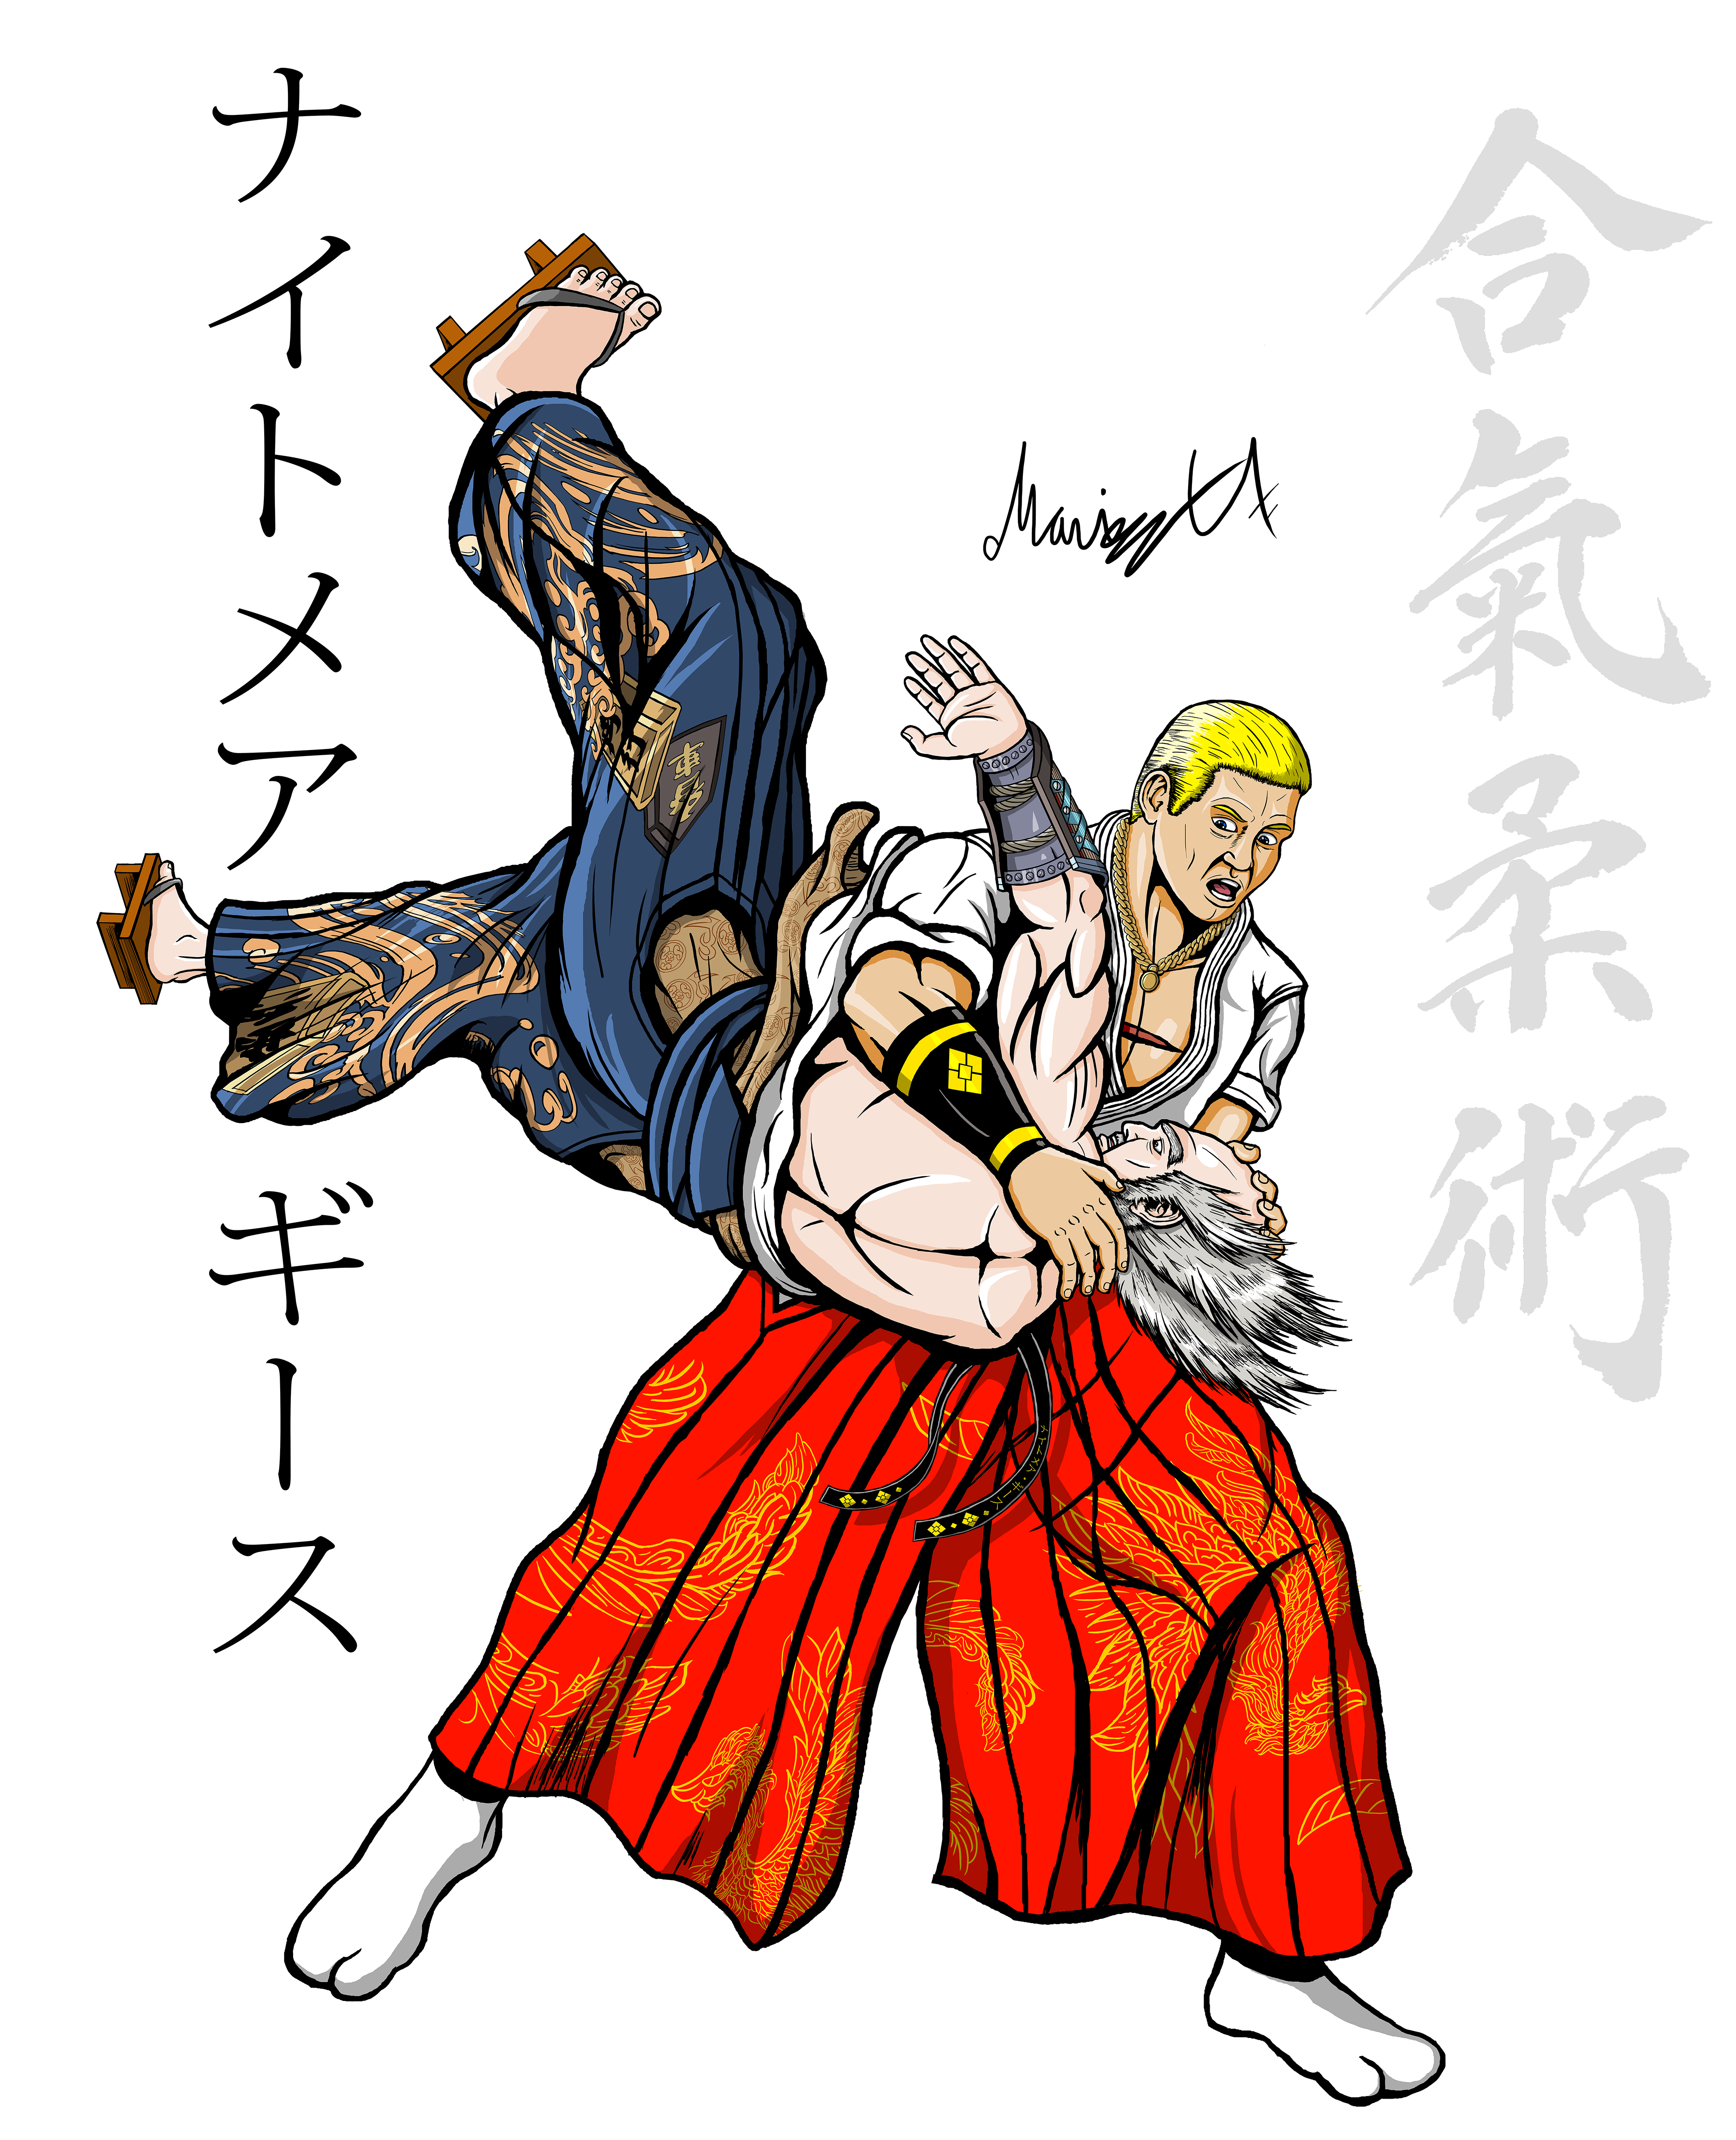 Geese Howard Doing Tenchi Nage On Heihachi Colored By Emokid64 On Newgrounds Tekken 7 geese vs king of fighters 14 geese, who is the better geese in your opinnion? newgrounds com